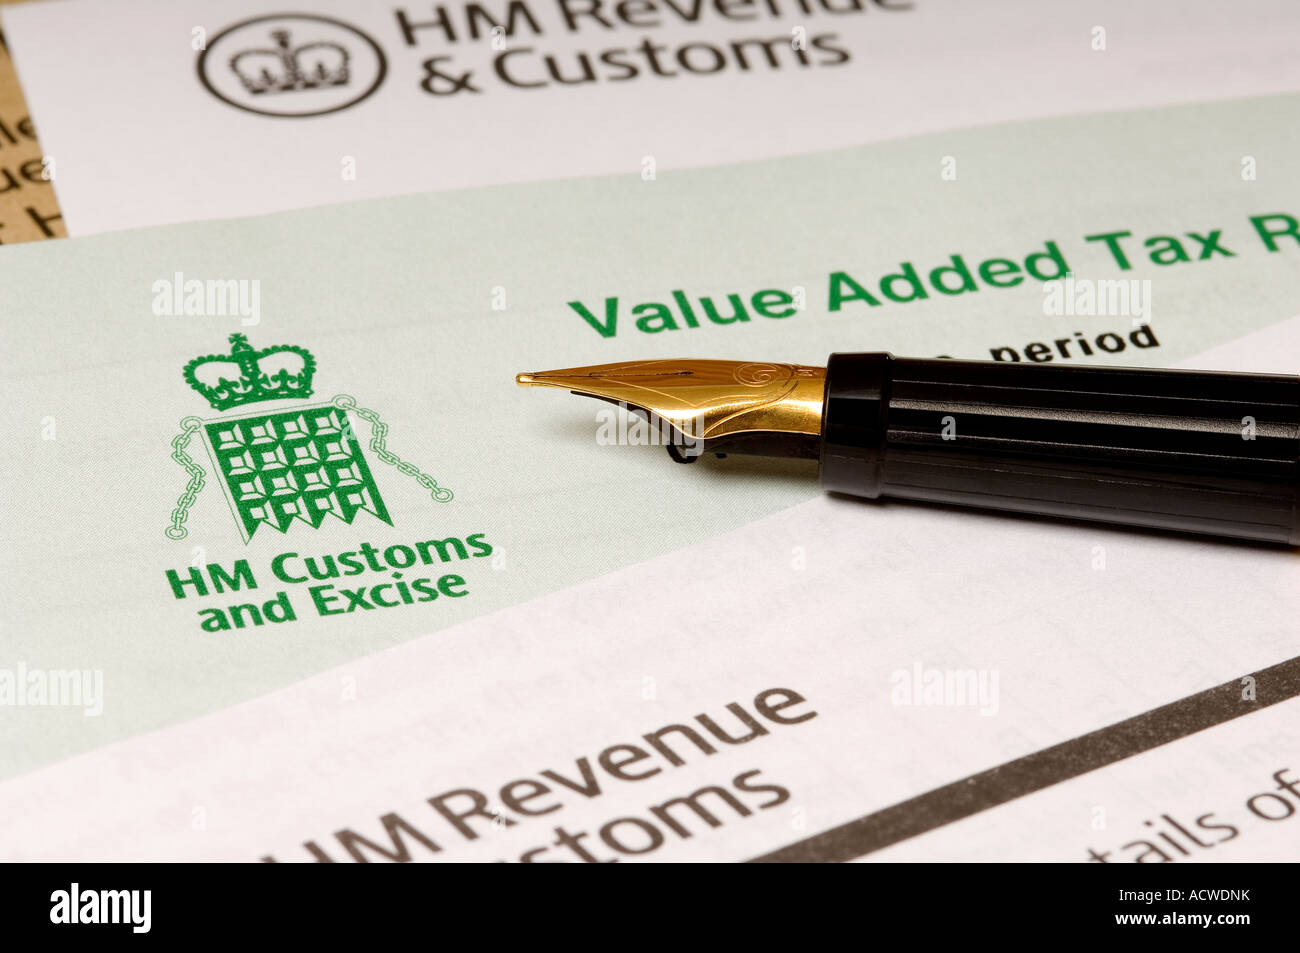 Value Added Tax Return Letters And Fountain Pen